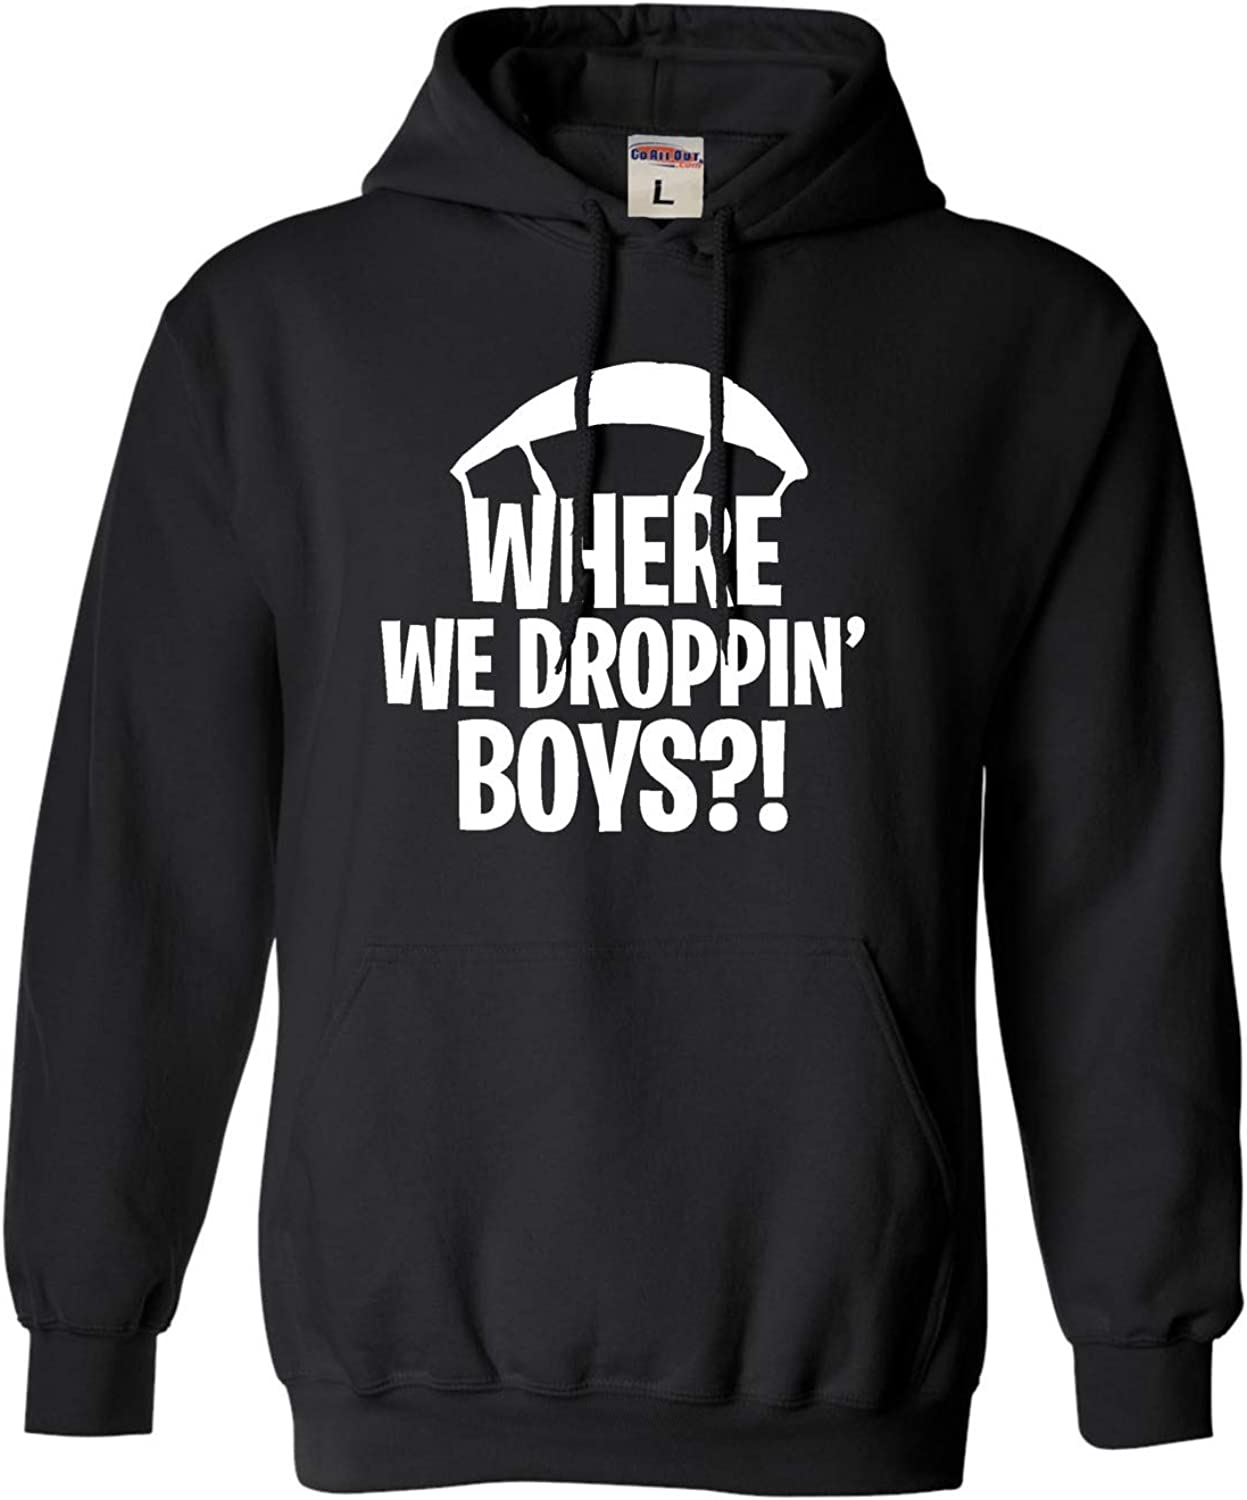 Go All Out Adult and Youth Where We Dropping Boys Sweatshirt Hoo